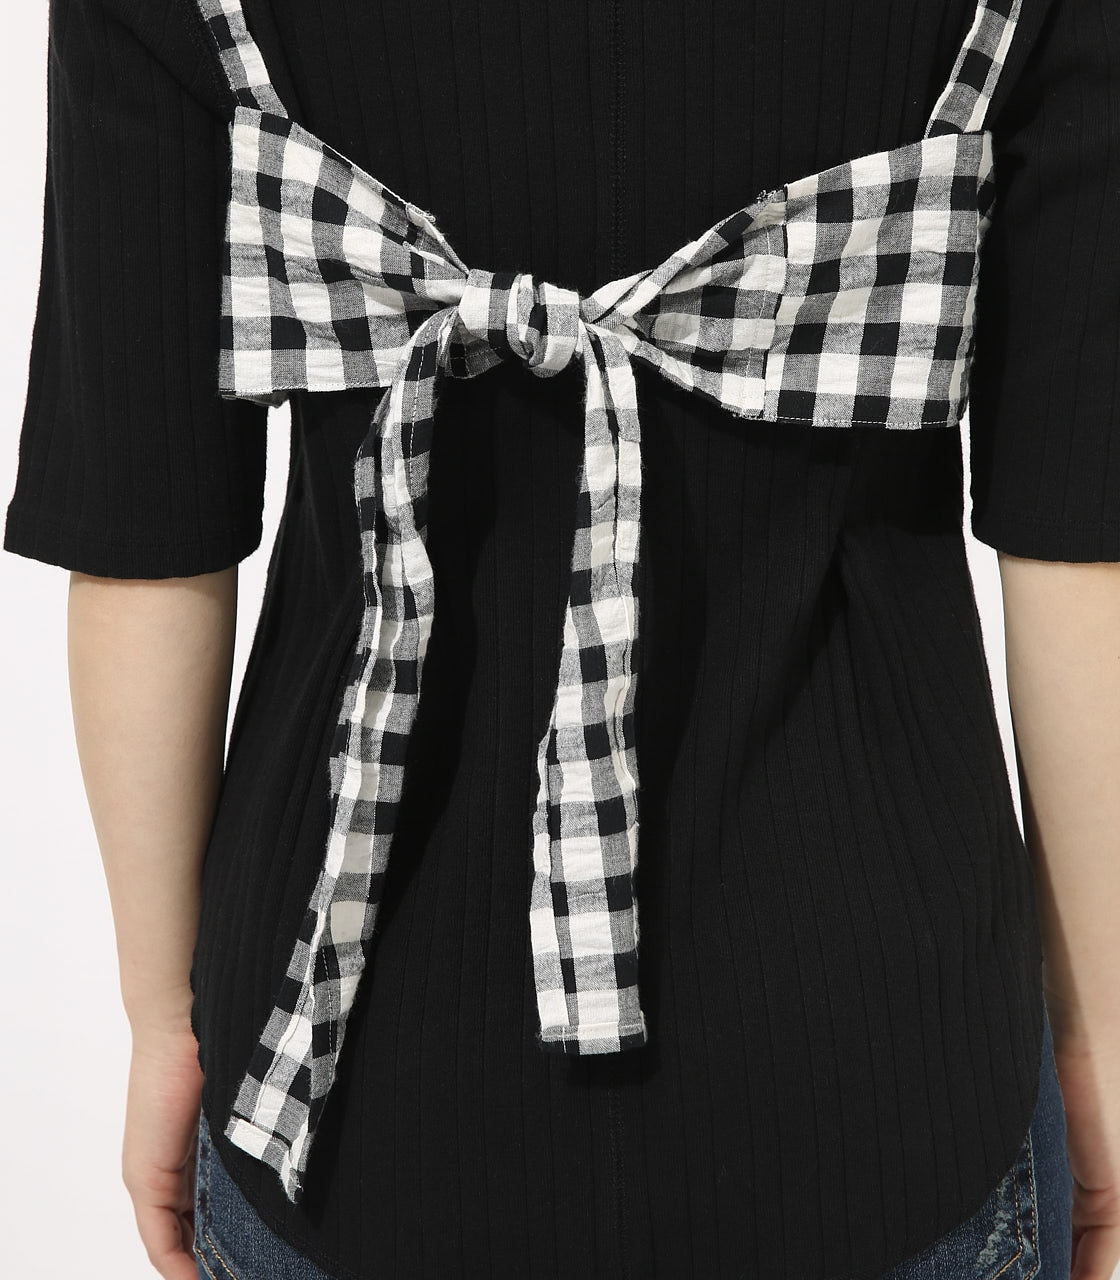 【AZUL BY MOUSSY】GINGHAM CHECK BUSTIER TOPS 【MOOK49掲載 90054】 詳細画像 柄BLK 8